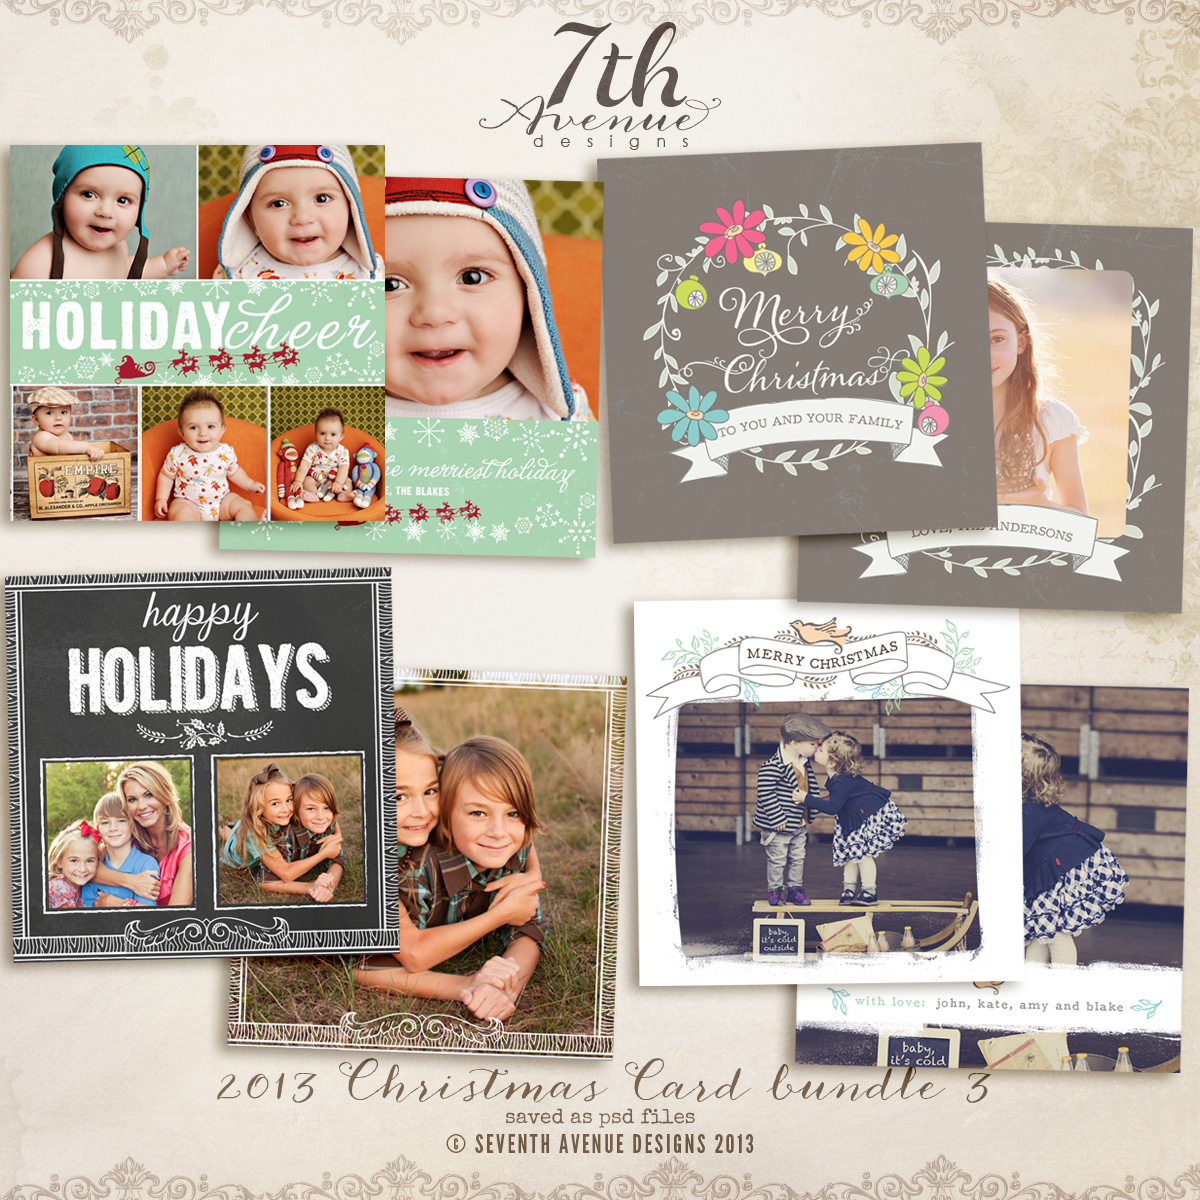 2013 Christmas Card Templates Bundle 3